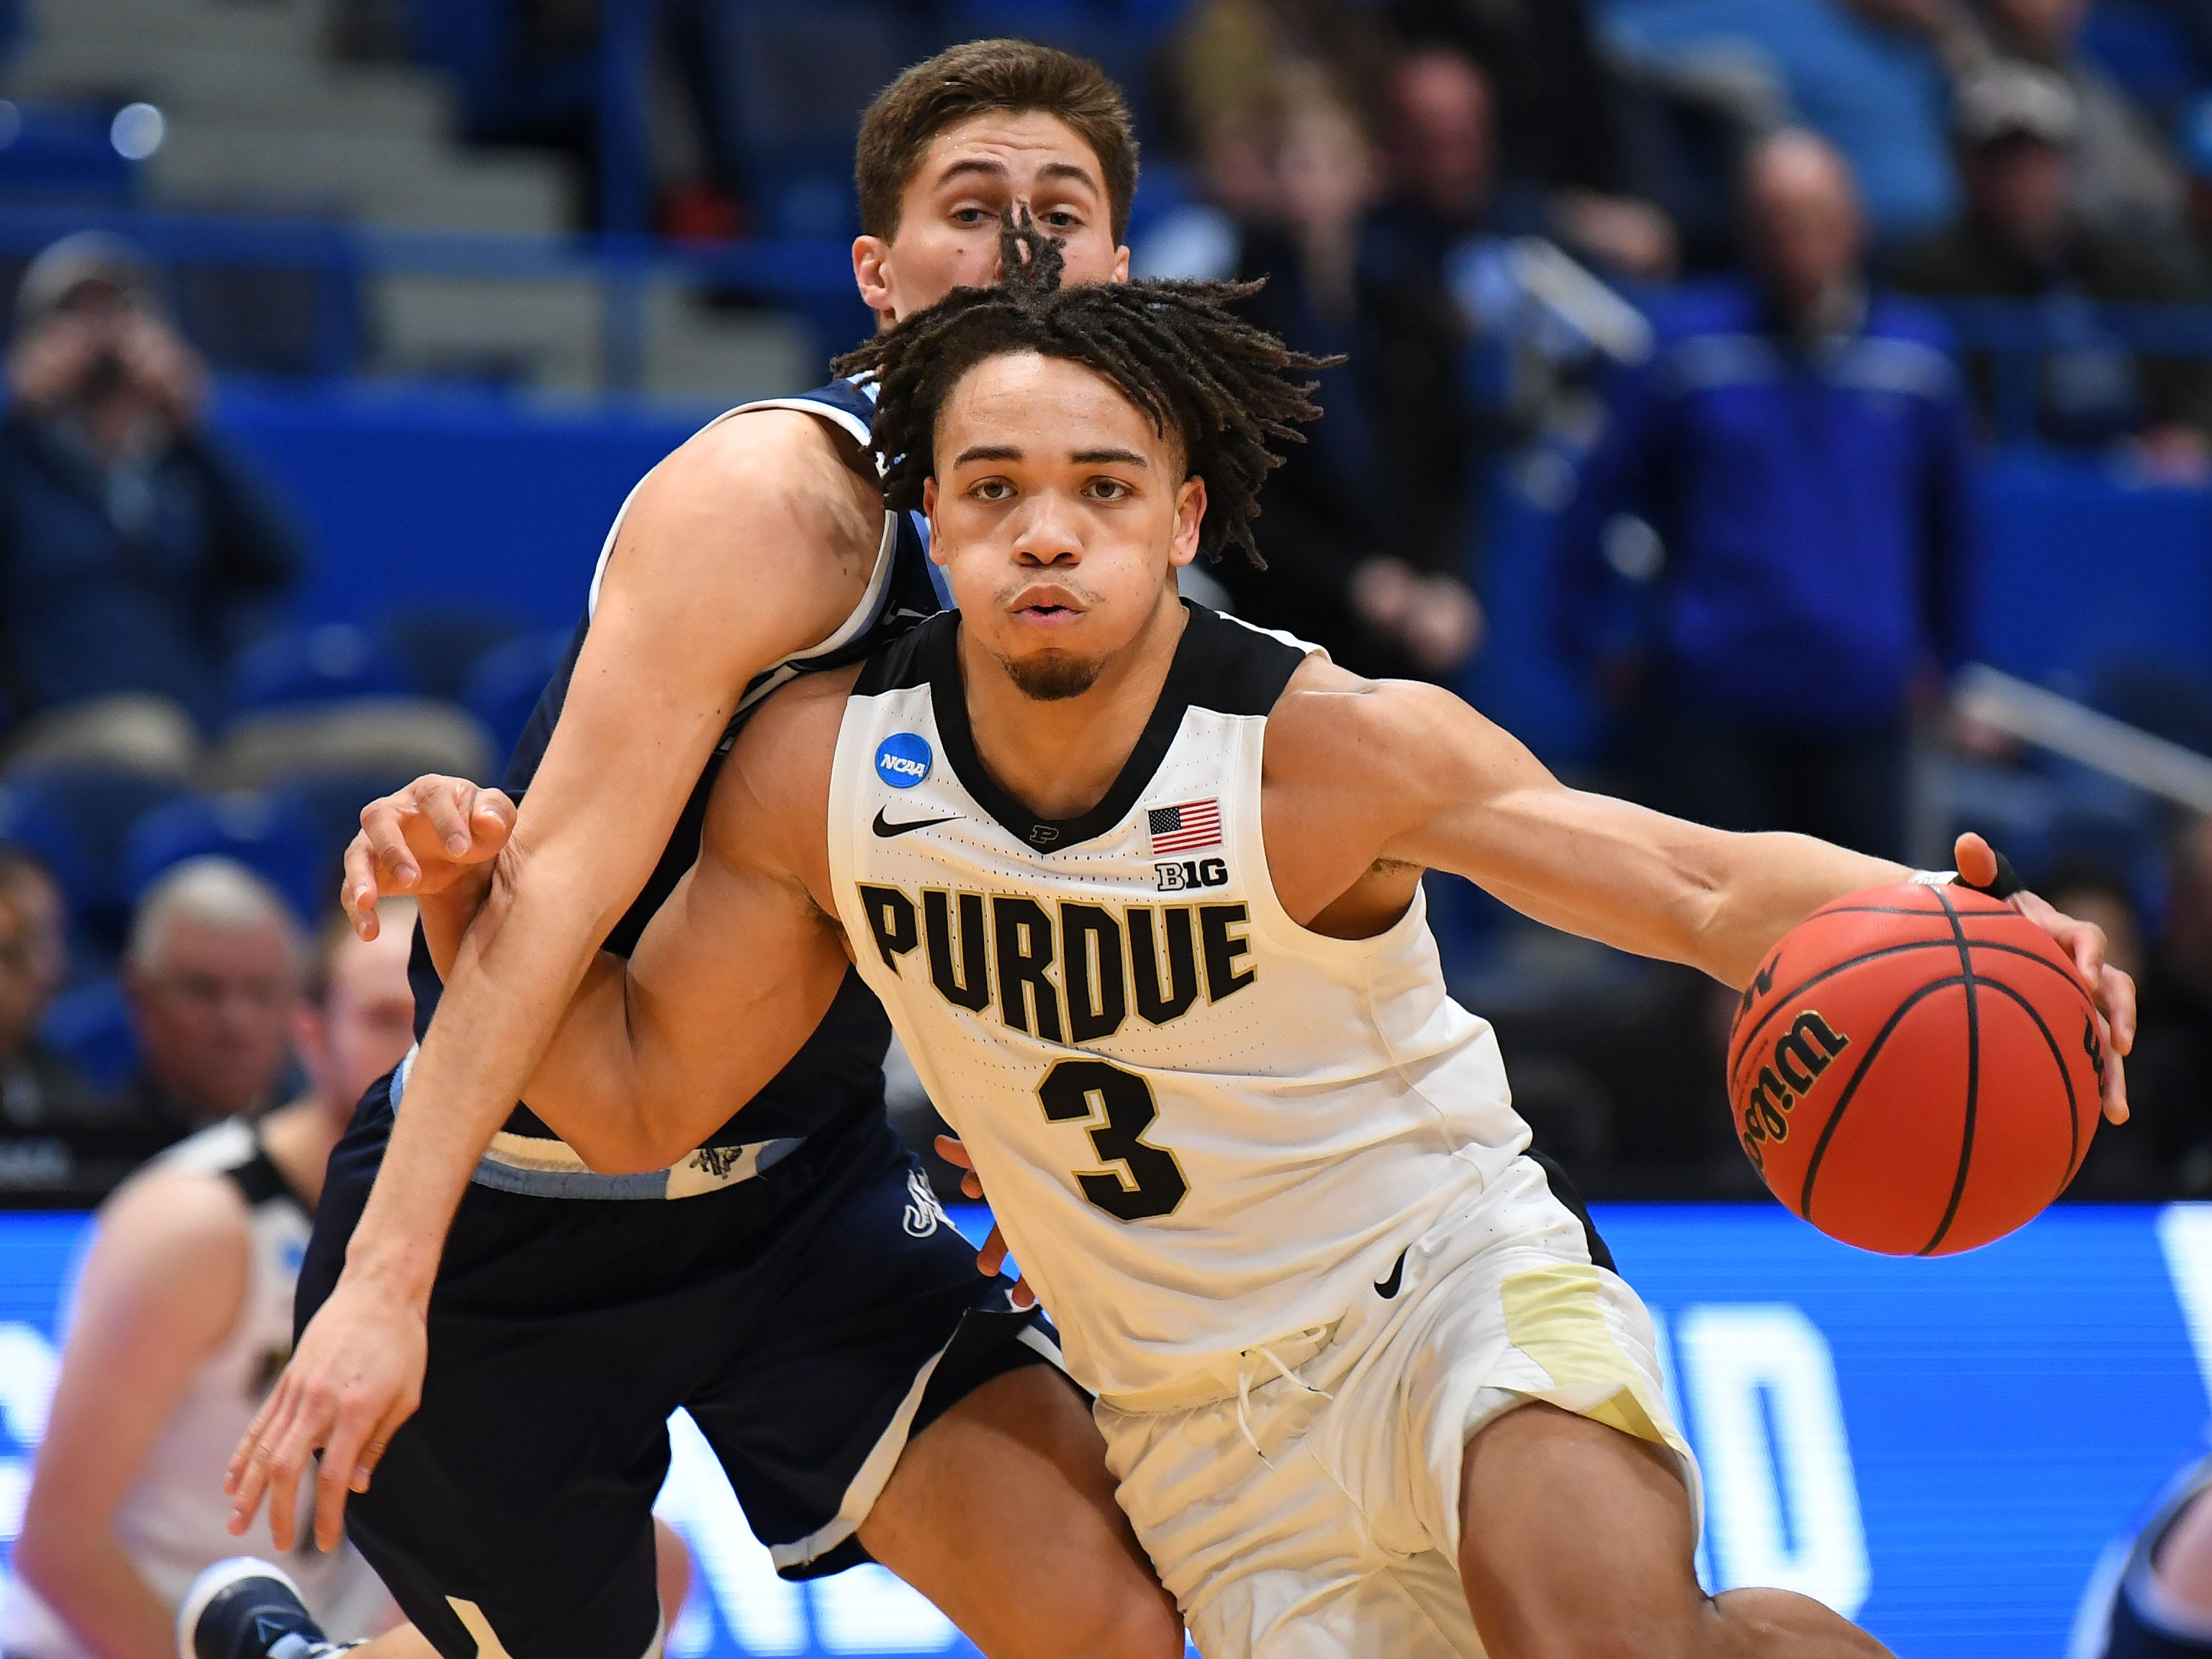 Mar 23, 2019; Hartford, CT, USA; Purdue Boilermakers guard Carsen Edwards (3) drives to the basket around Villanova Wildcats guard Collin Gillespie (2) during the second half of a game in the second round of the 2019 NCAA Tournament at XL Center. Mandatory Credit: Robert Deutsch-USA TODAY Sports